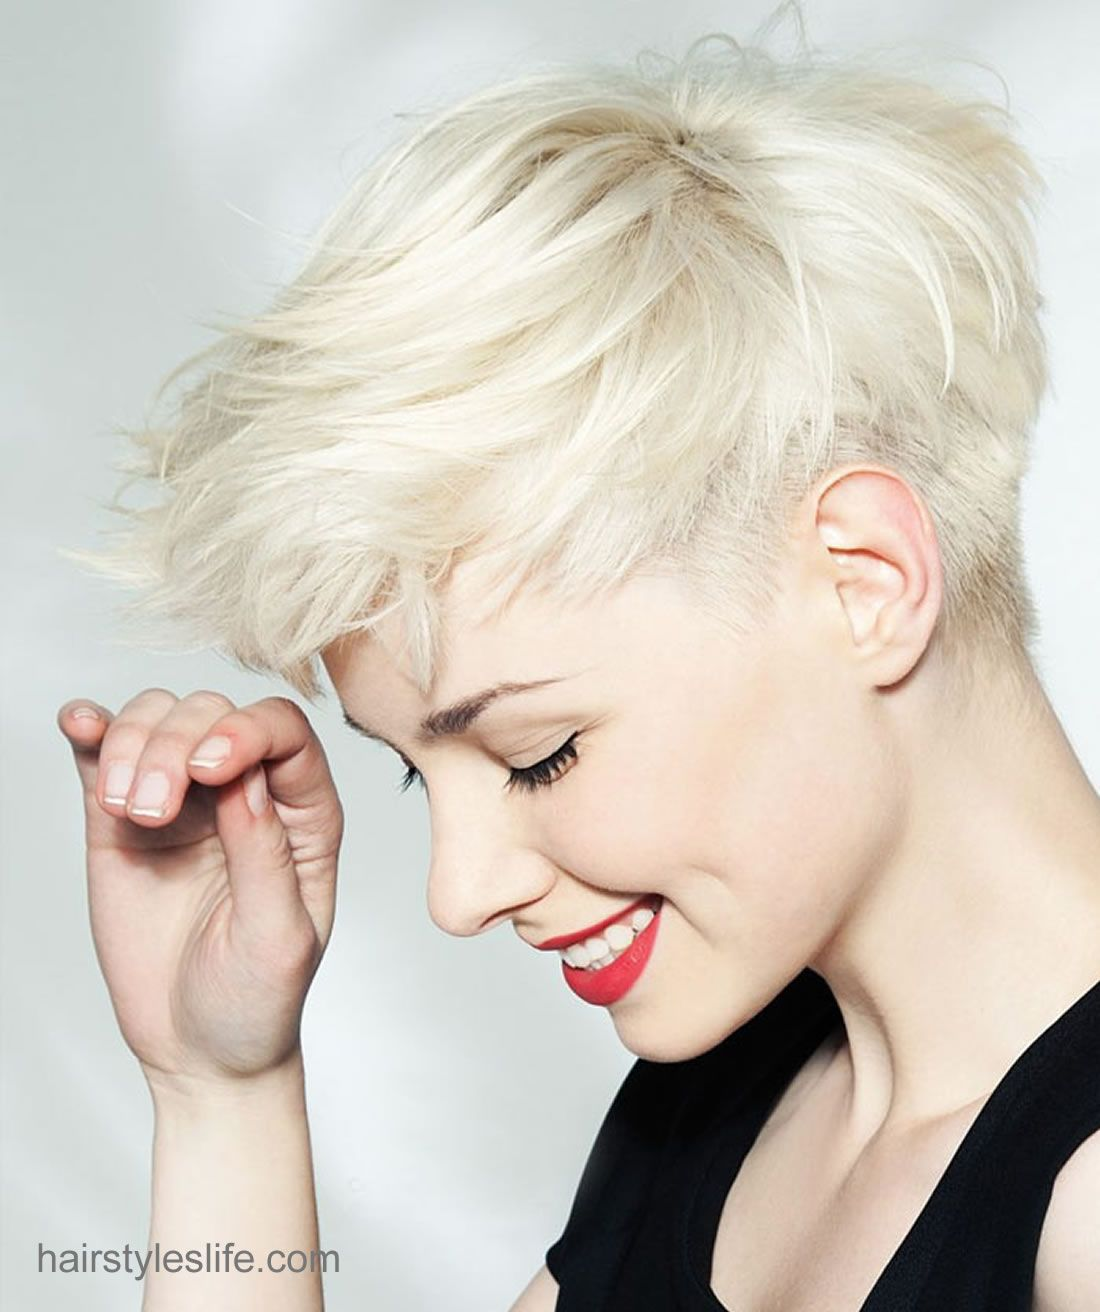 Short haircut for women u trend best short haircut ideas